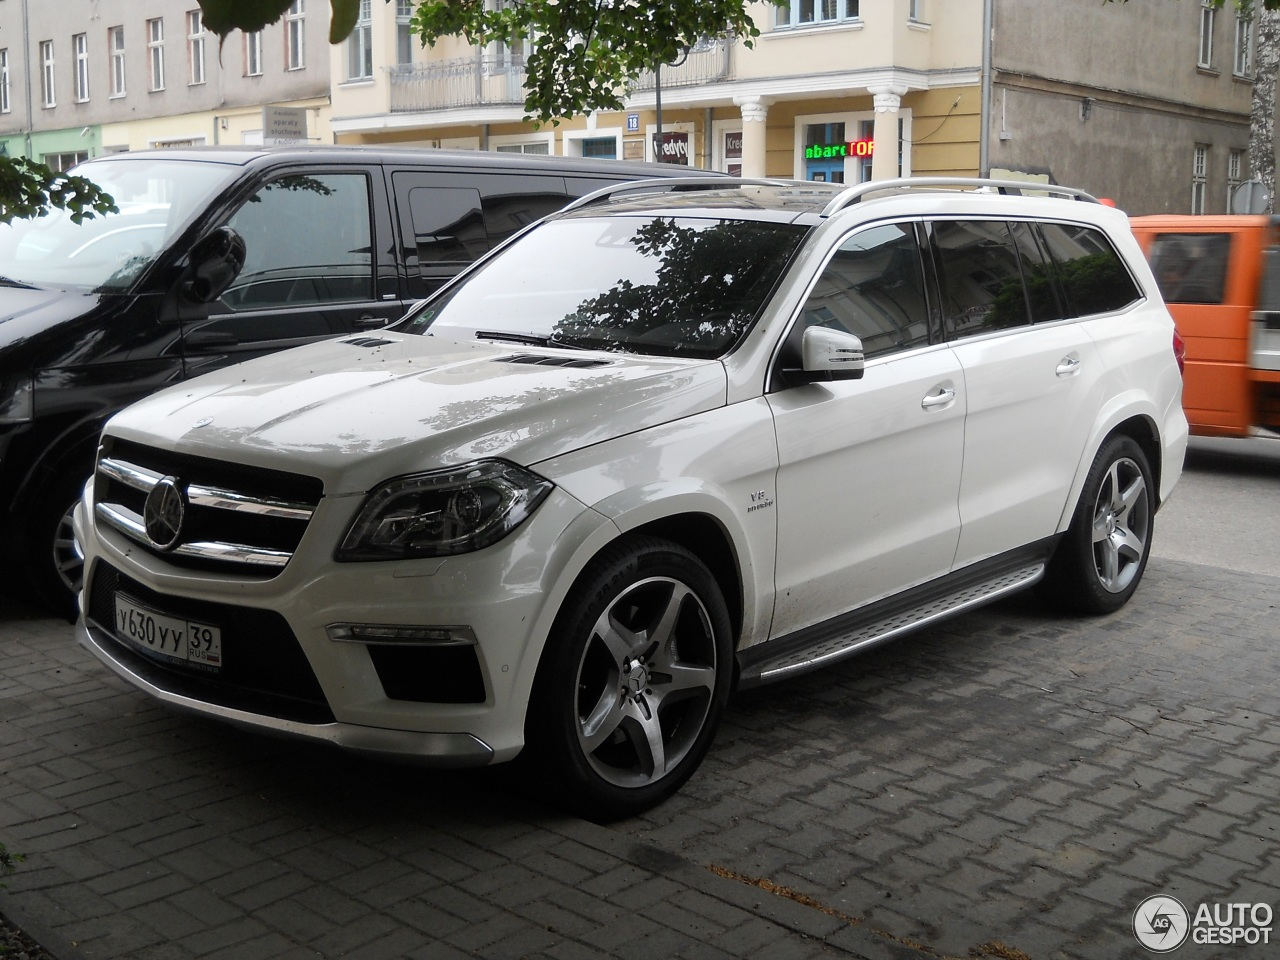 Mercedes benz gl 63 amg x166 31 may 2013 autogespot for Mercedes benz gl 63 amg